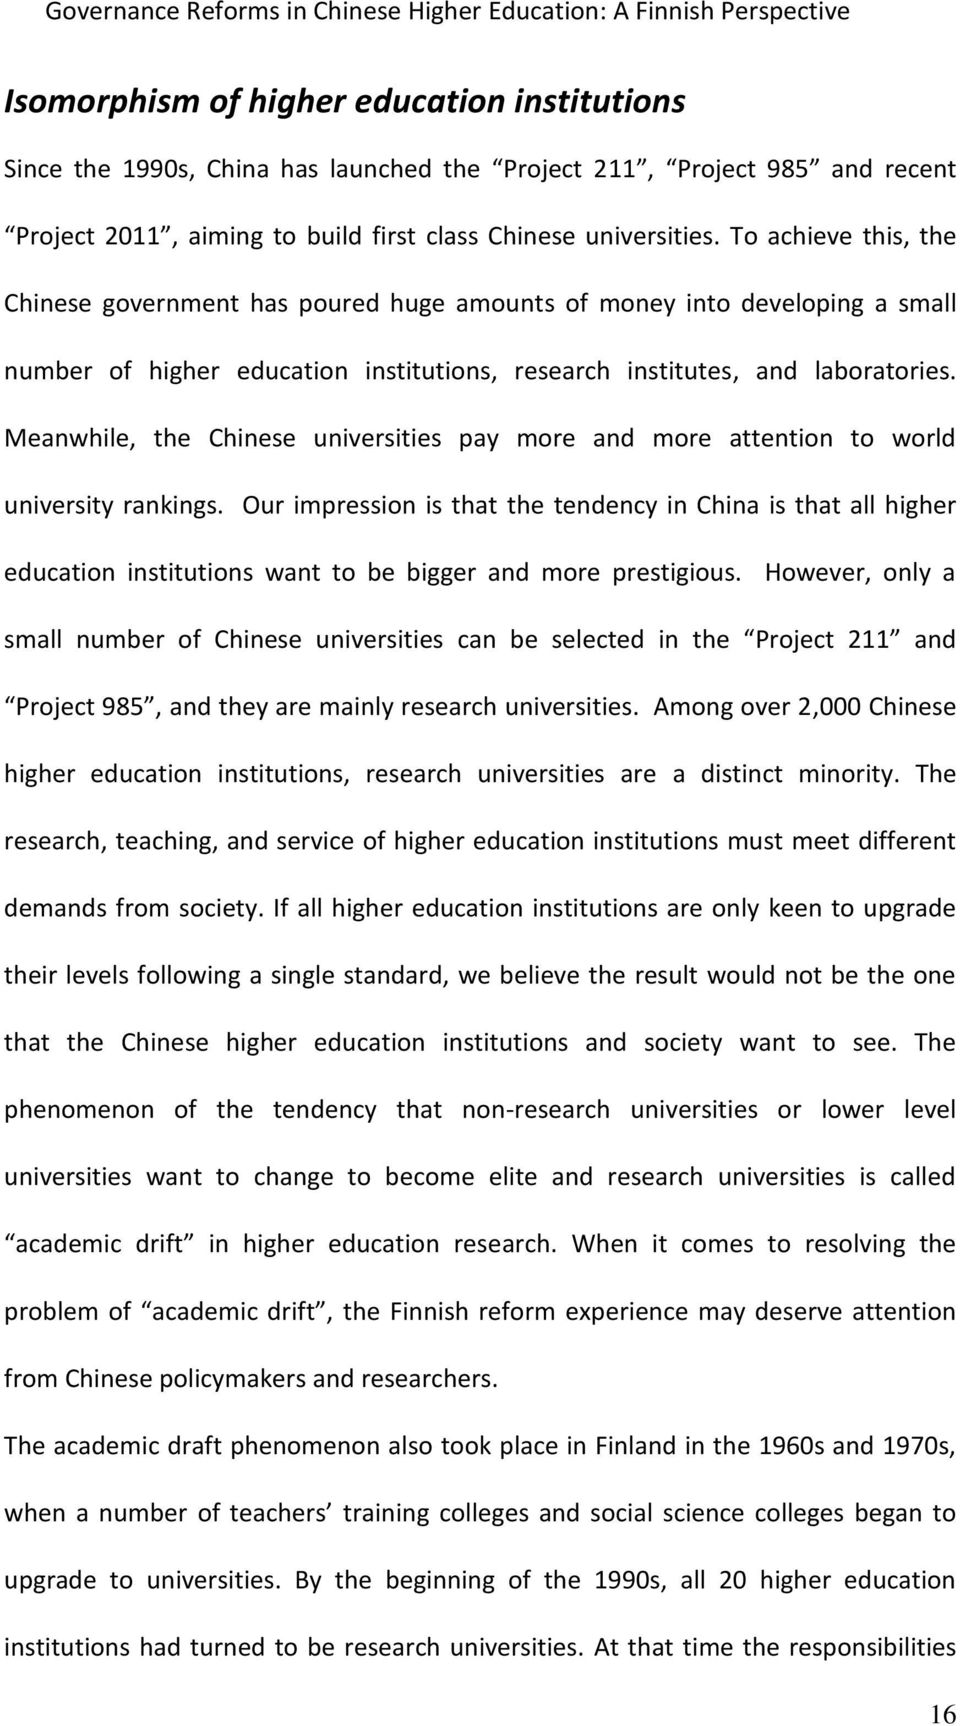 To achieve this, the Chinese government has poured huge amounts of money into developing a small number of higher education institutions, research institutes, and laboratories.